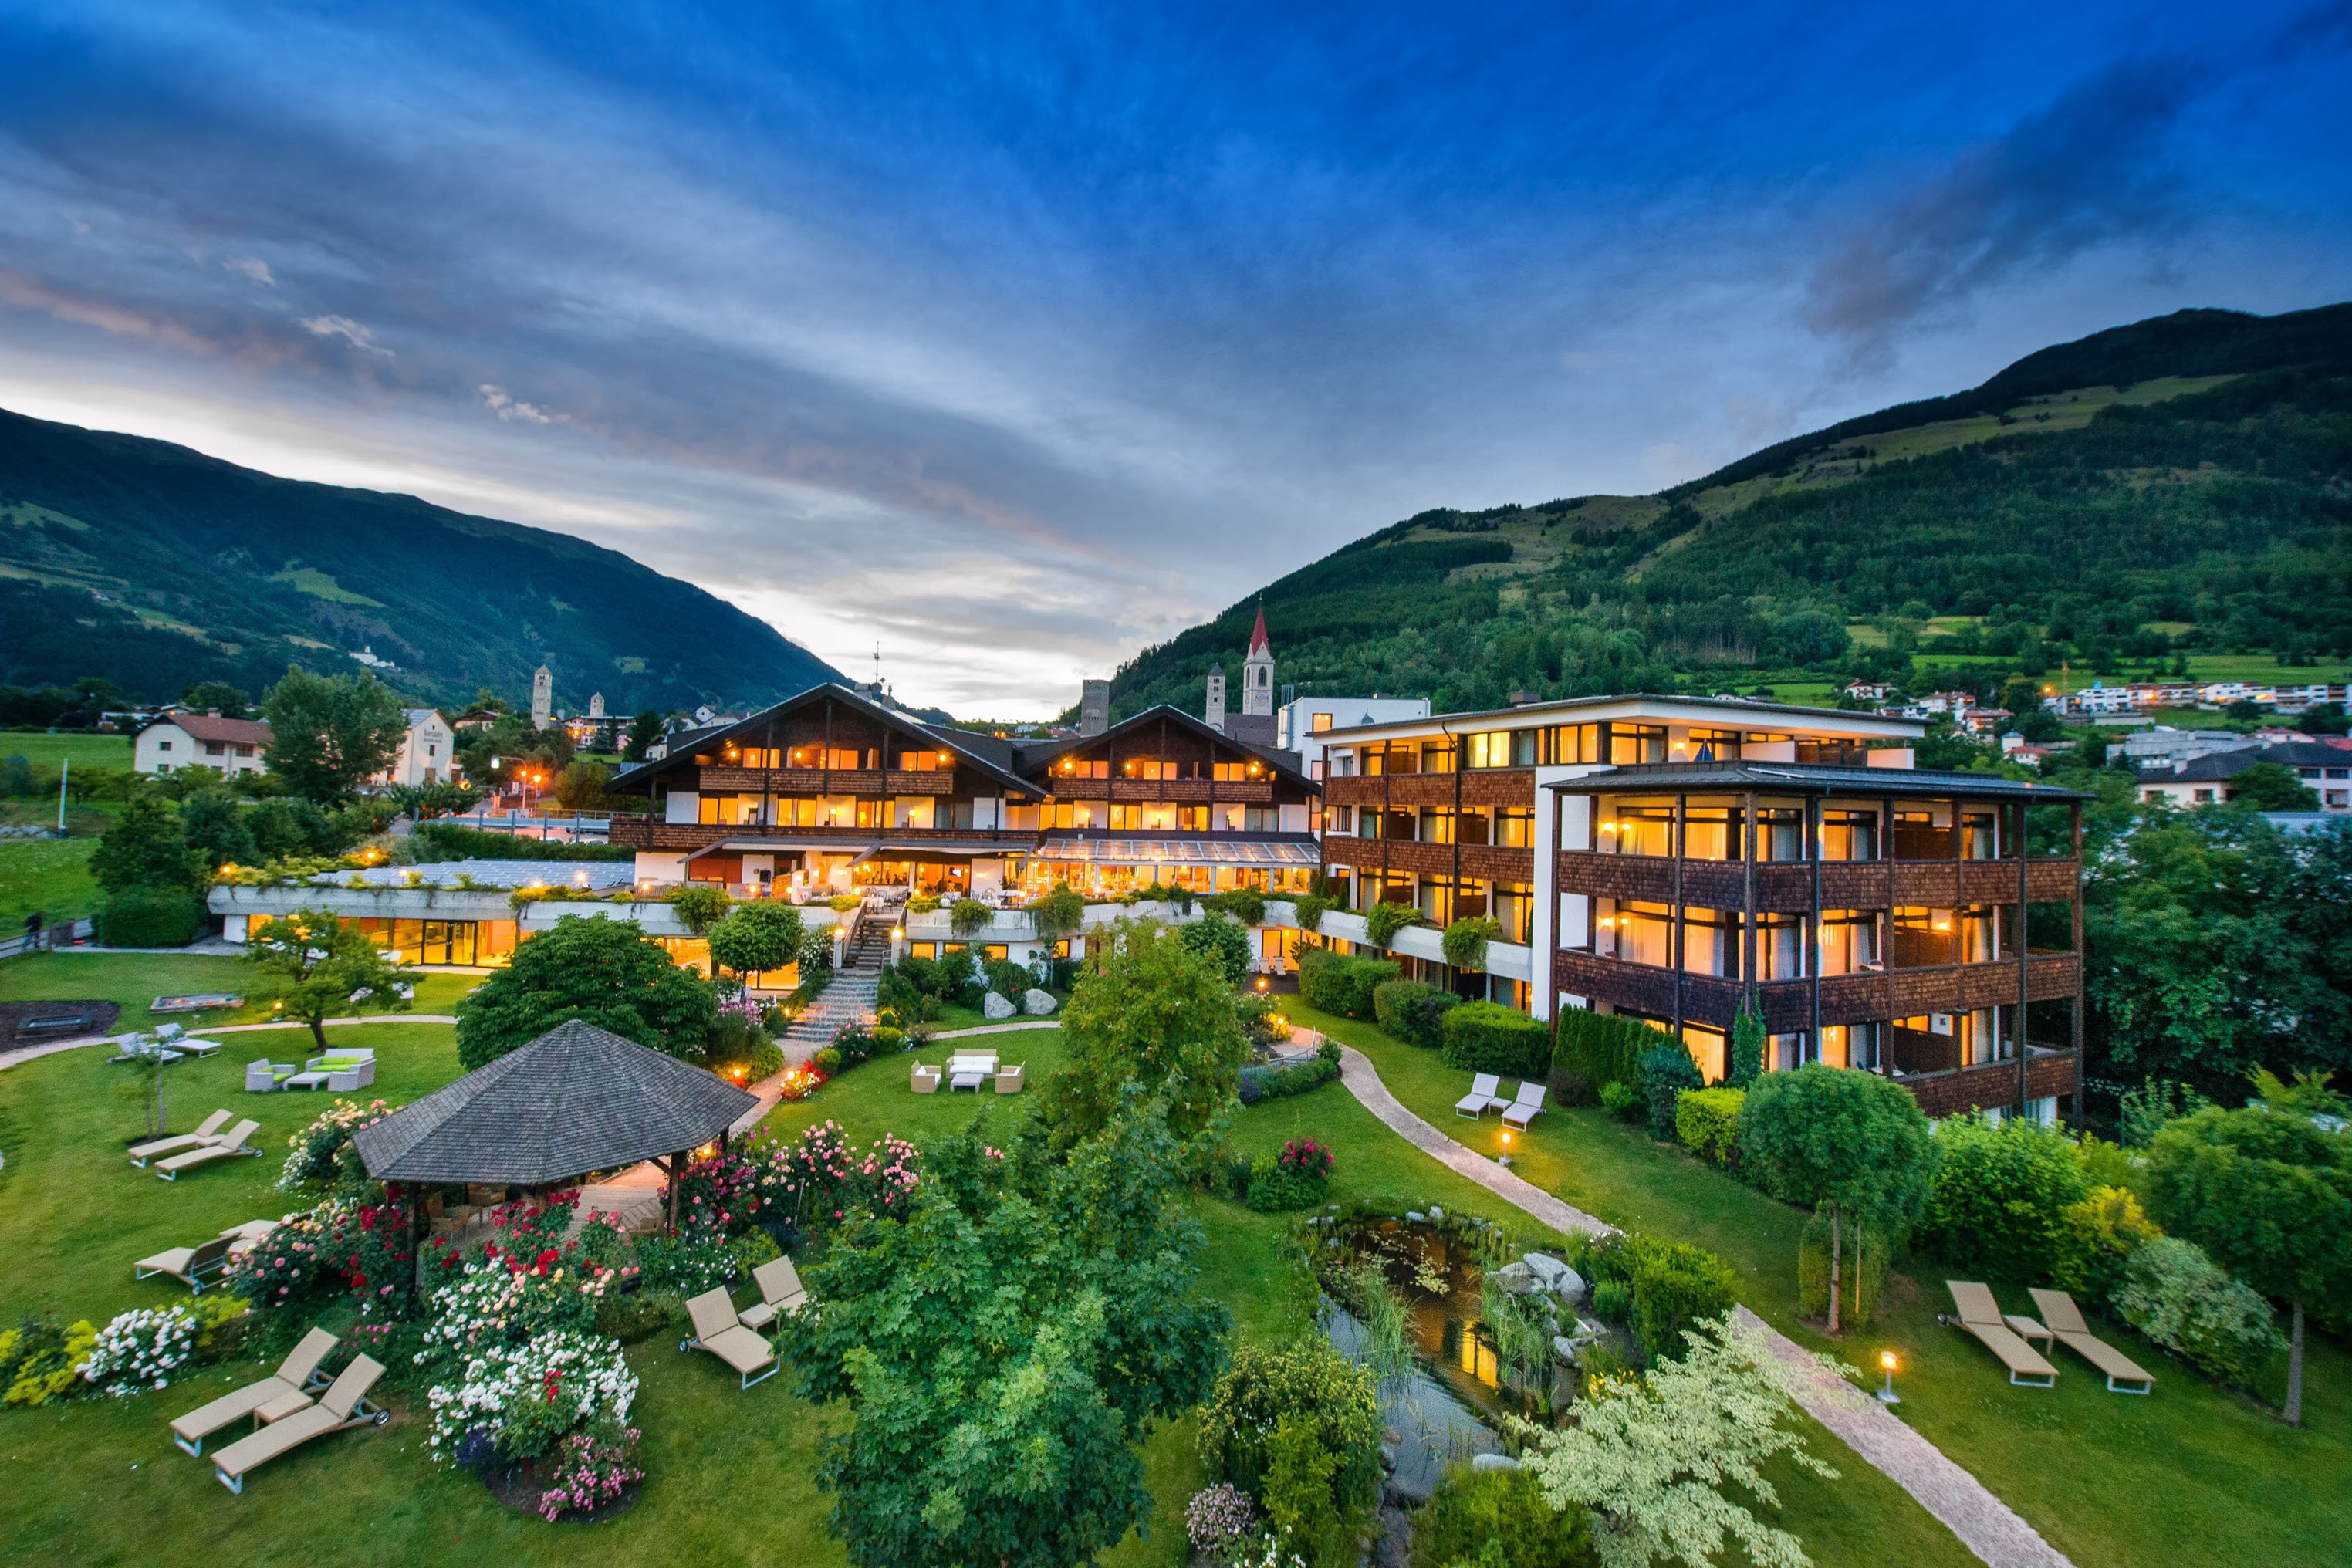 ****S Beauty& Wellnes Resort Garberhof